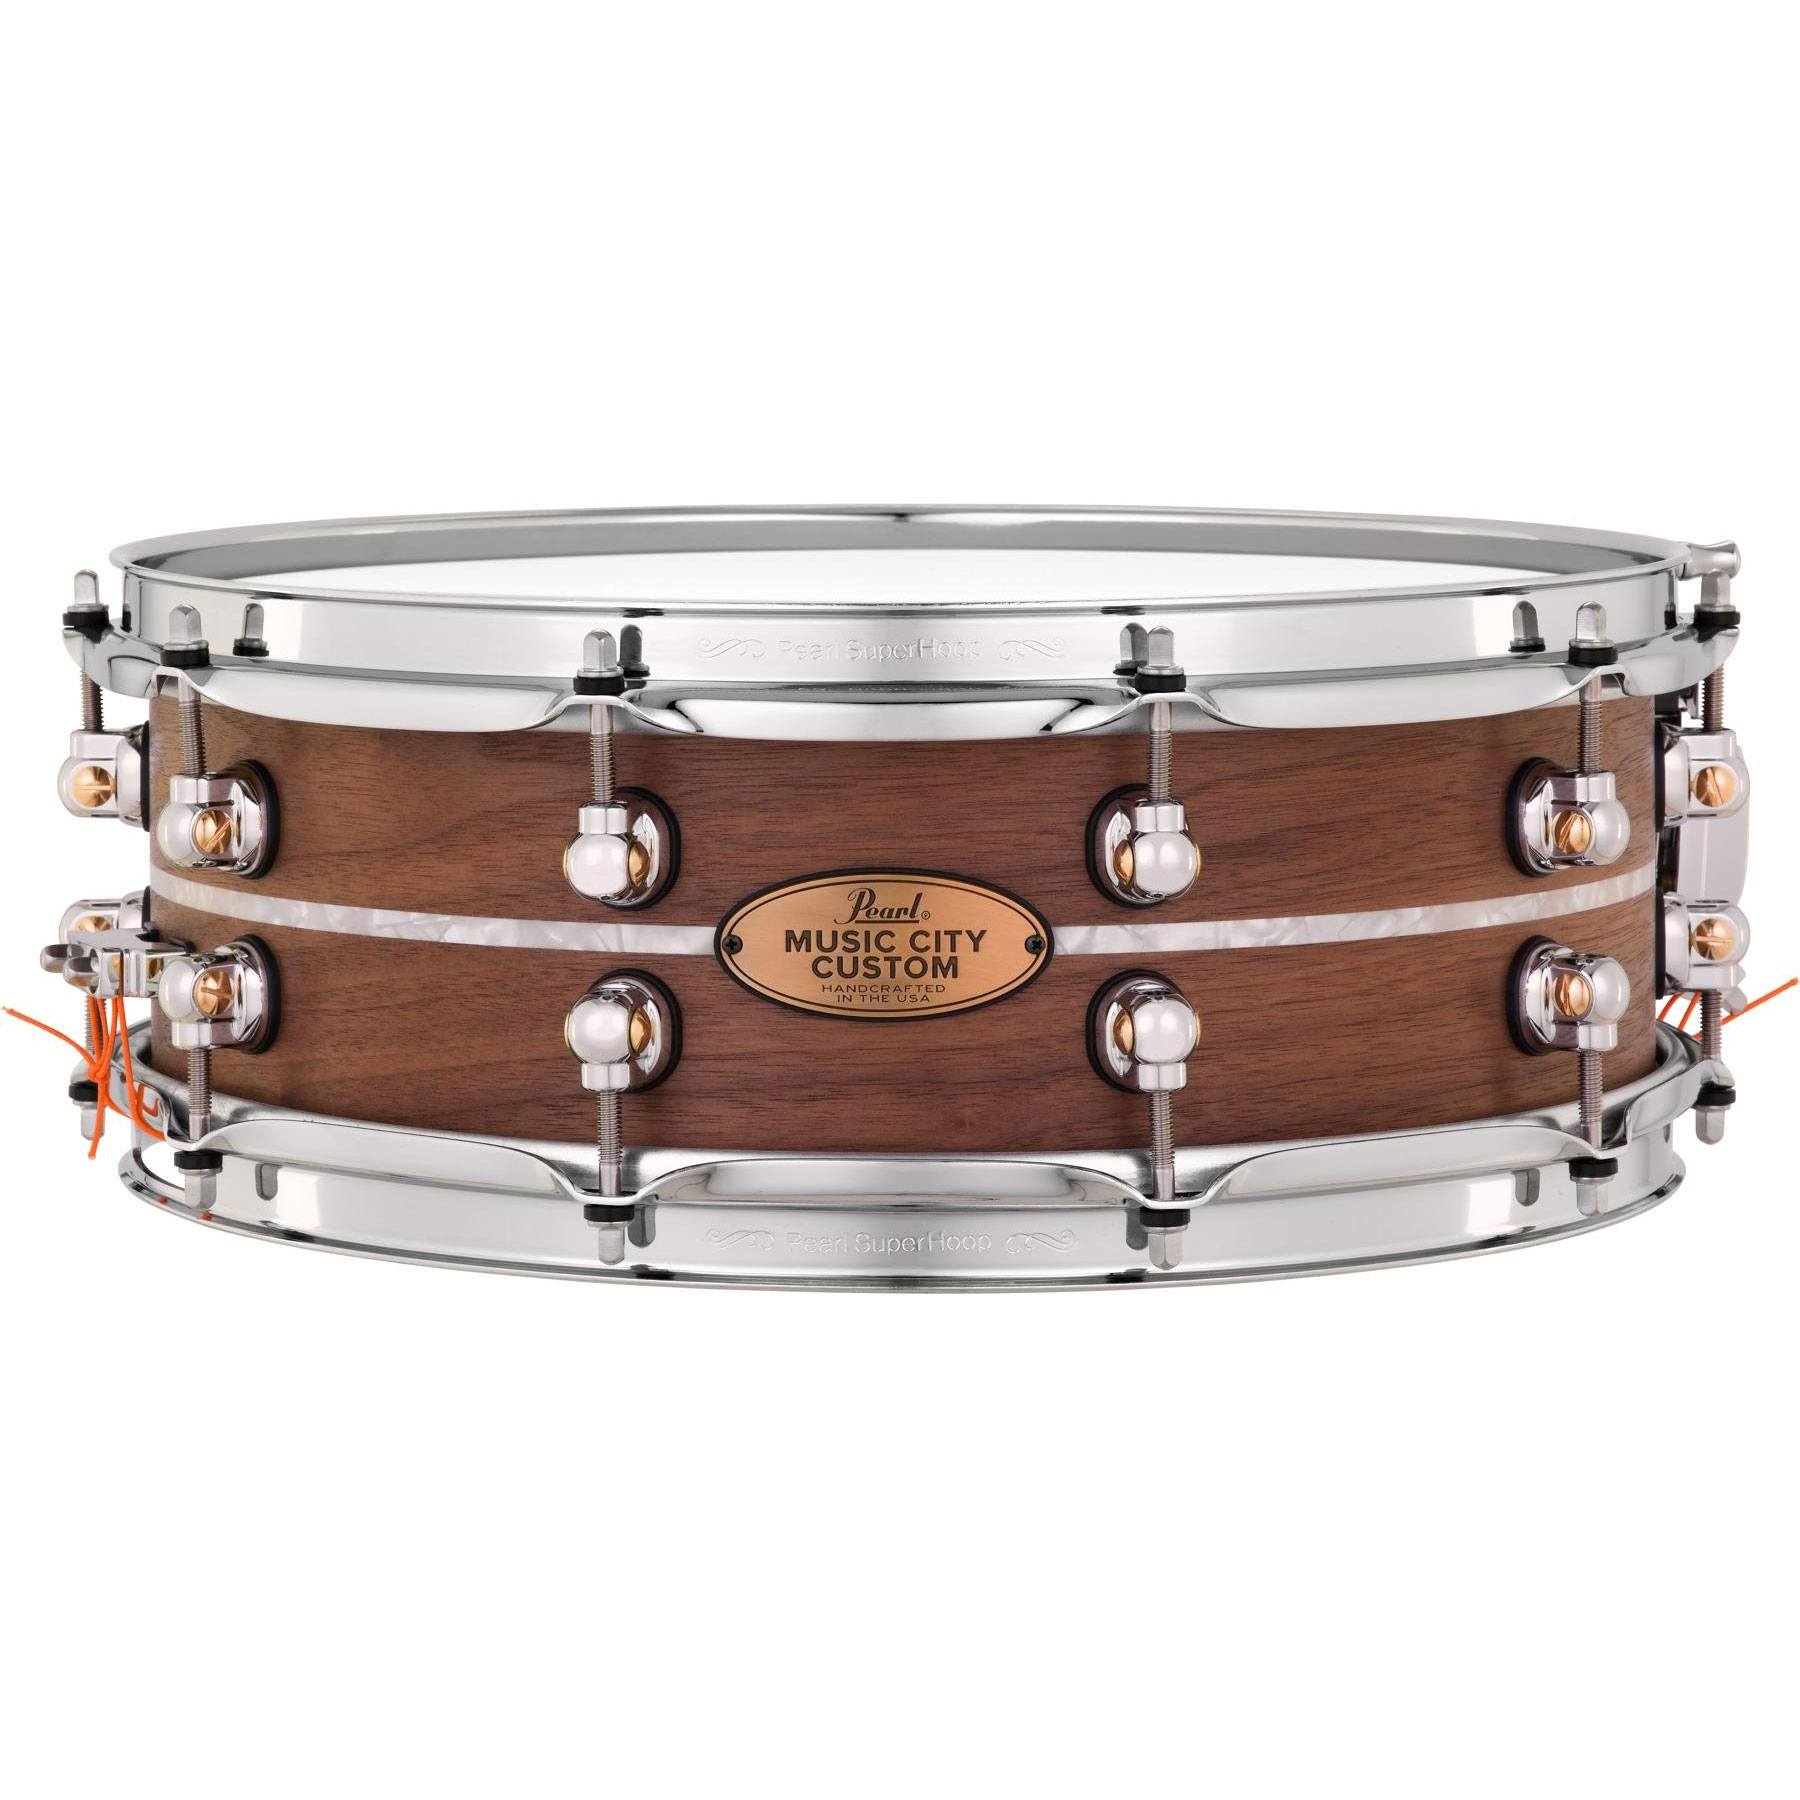 "Pearl 14"" x 5"" Music City Custom Solid Walnut Snare Drum with Nicotine Marine Pearl Inlay"